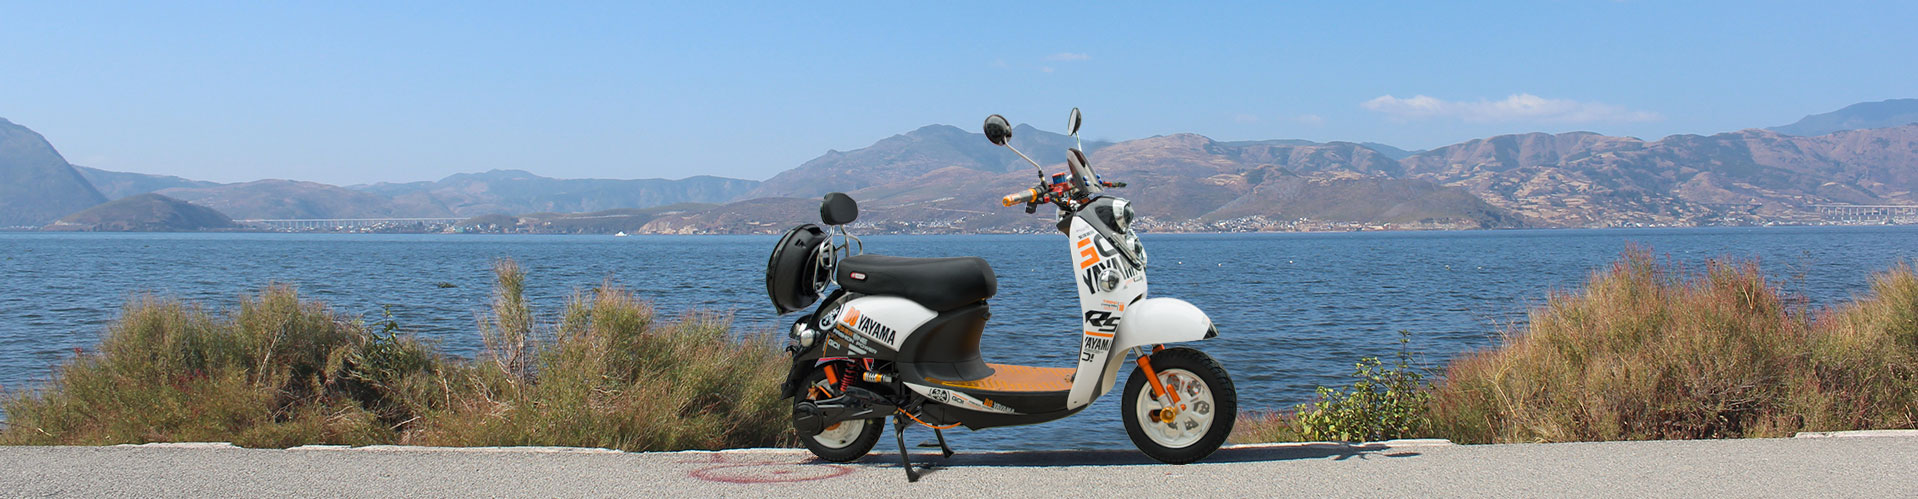 1000W Electric Motorcycle